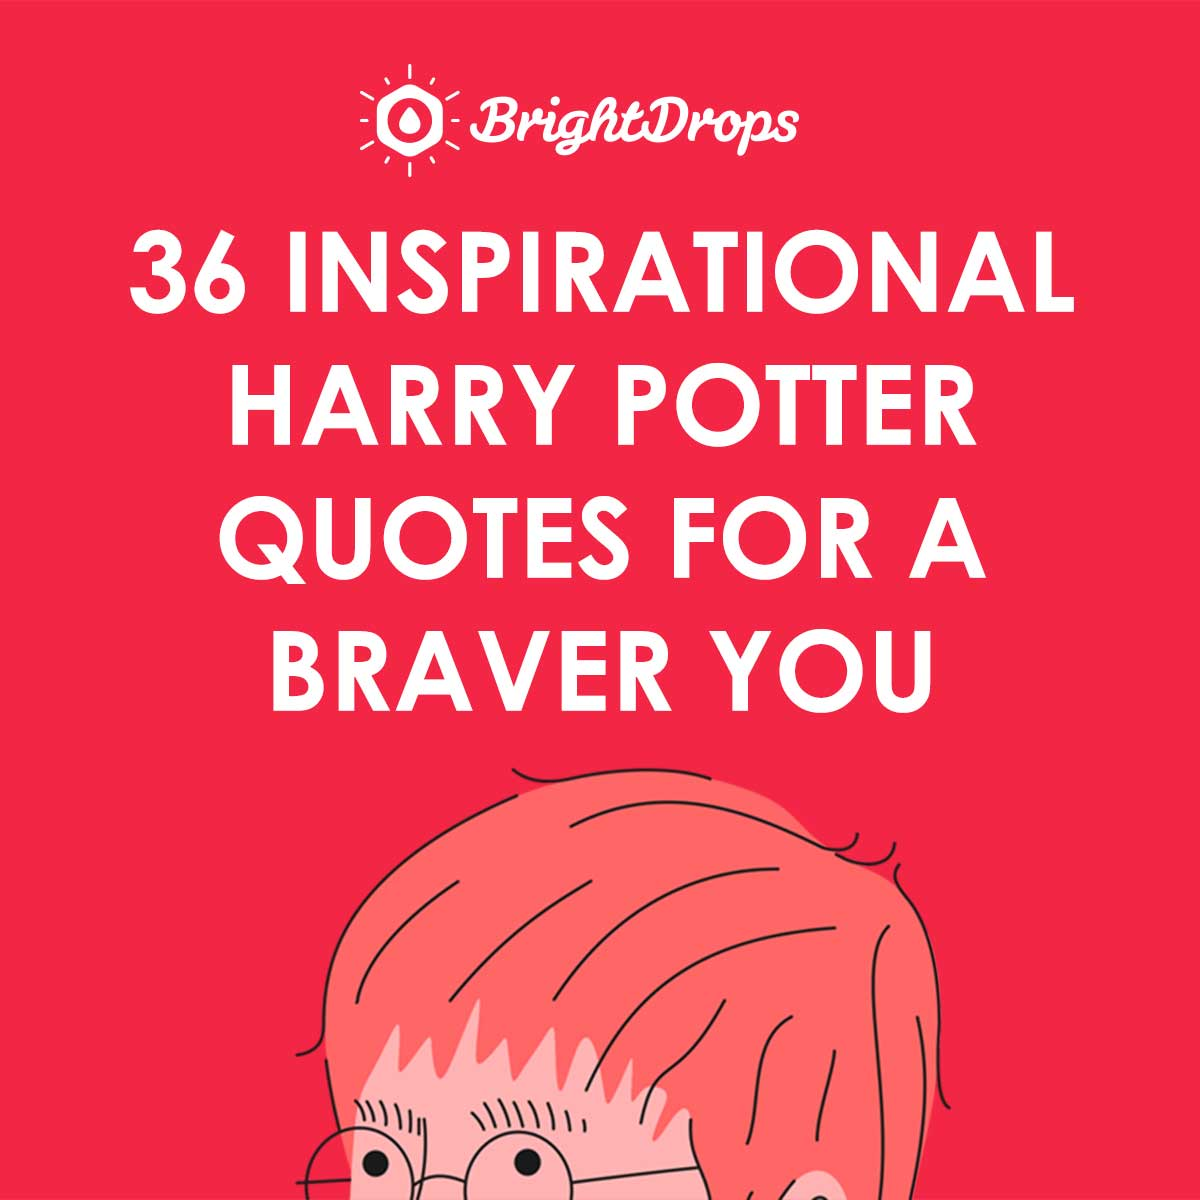 Best I Love You Quotes Wallpapers 36 Inspirational Harry Potter Quotes For A Braver You